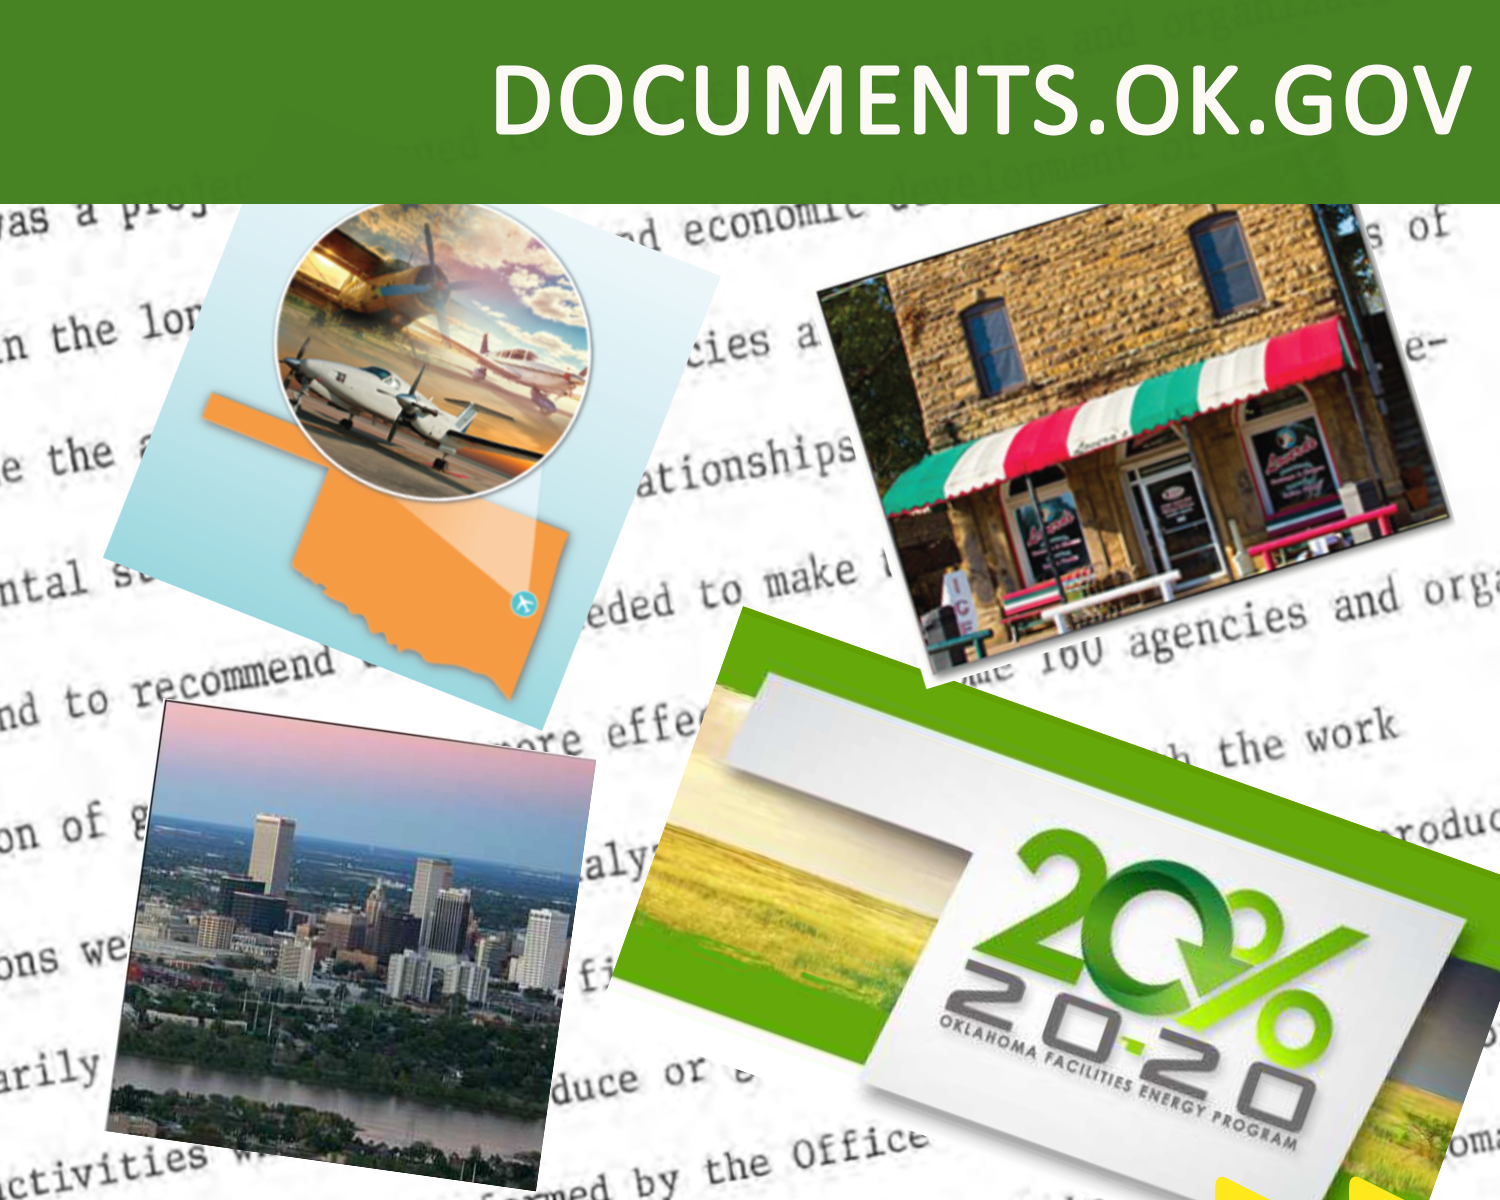 View collection of documents from Oklahoma agencies